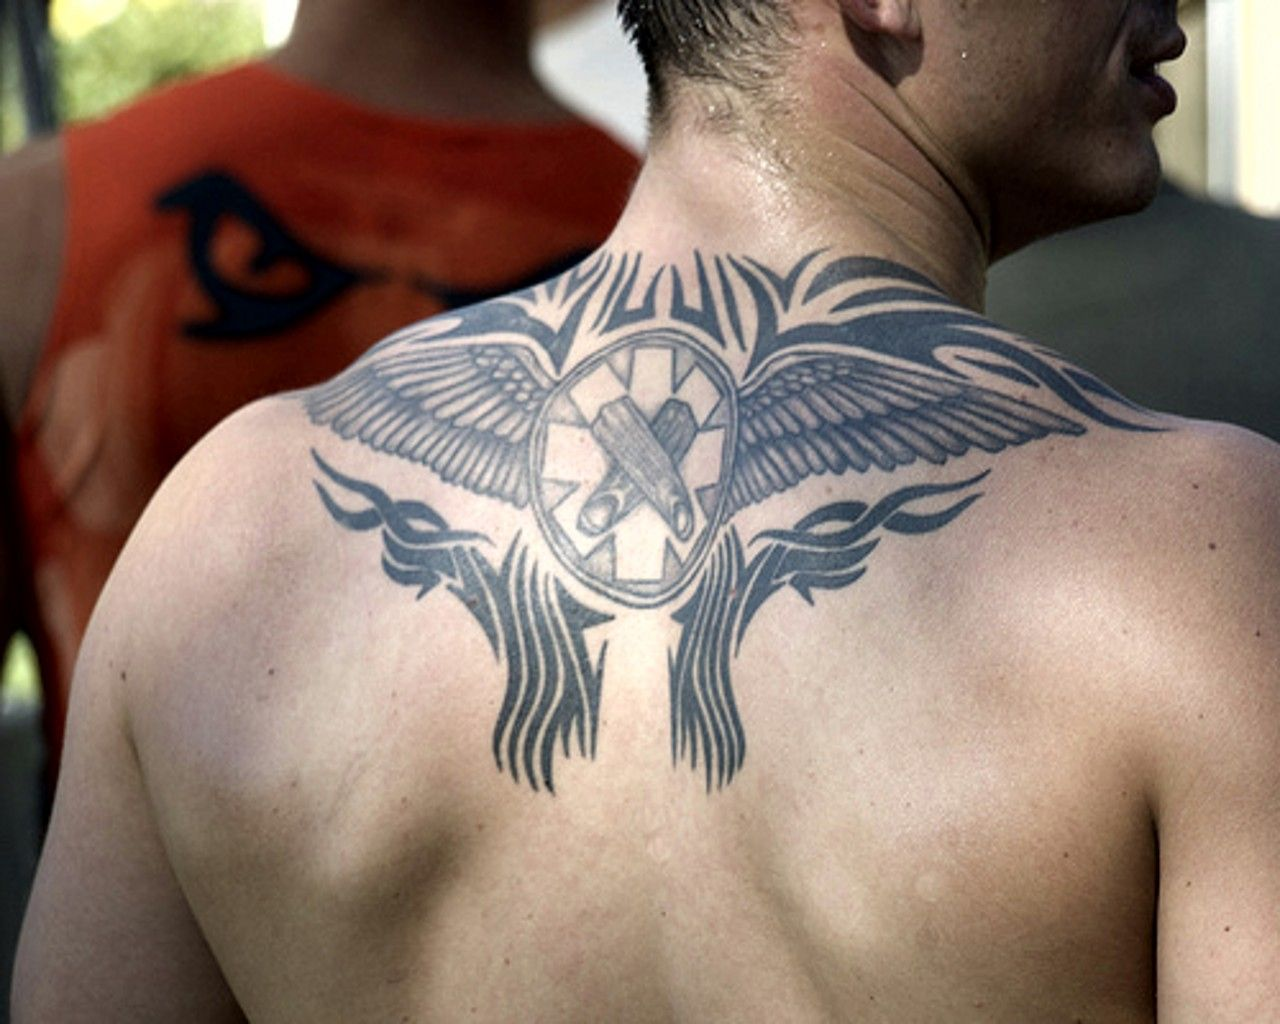 Image Result For Bird Back Tattoos For Mens Back Tattoos For Guys Back Tattoo Tattoos For Guys